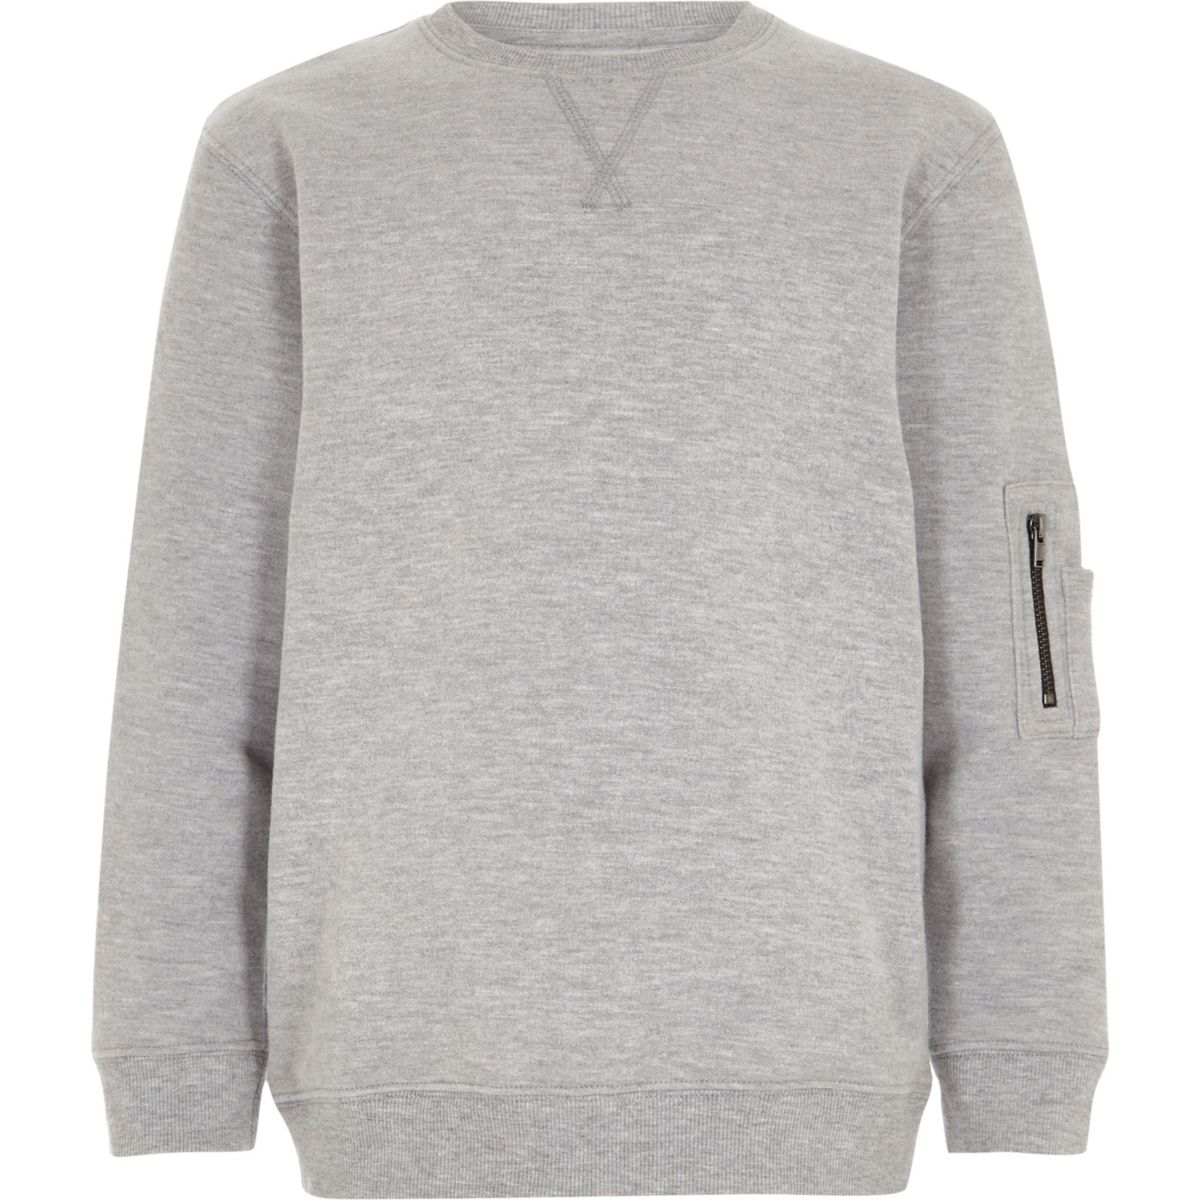 Boys marl grey zip pocket sleeve sweatshirt